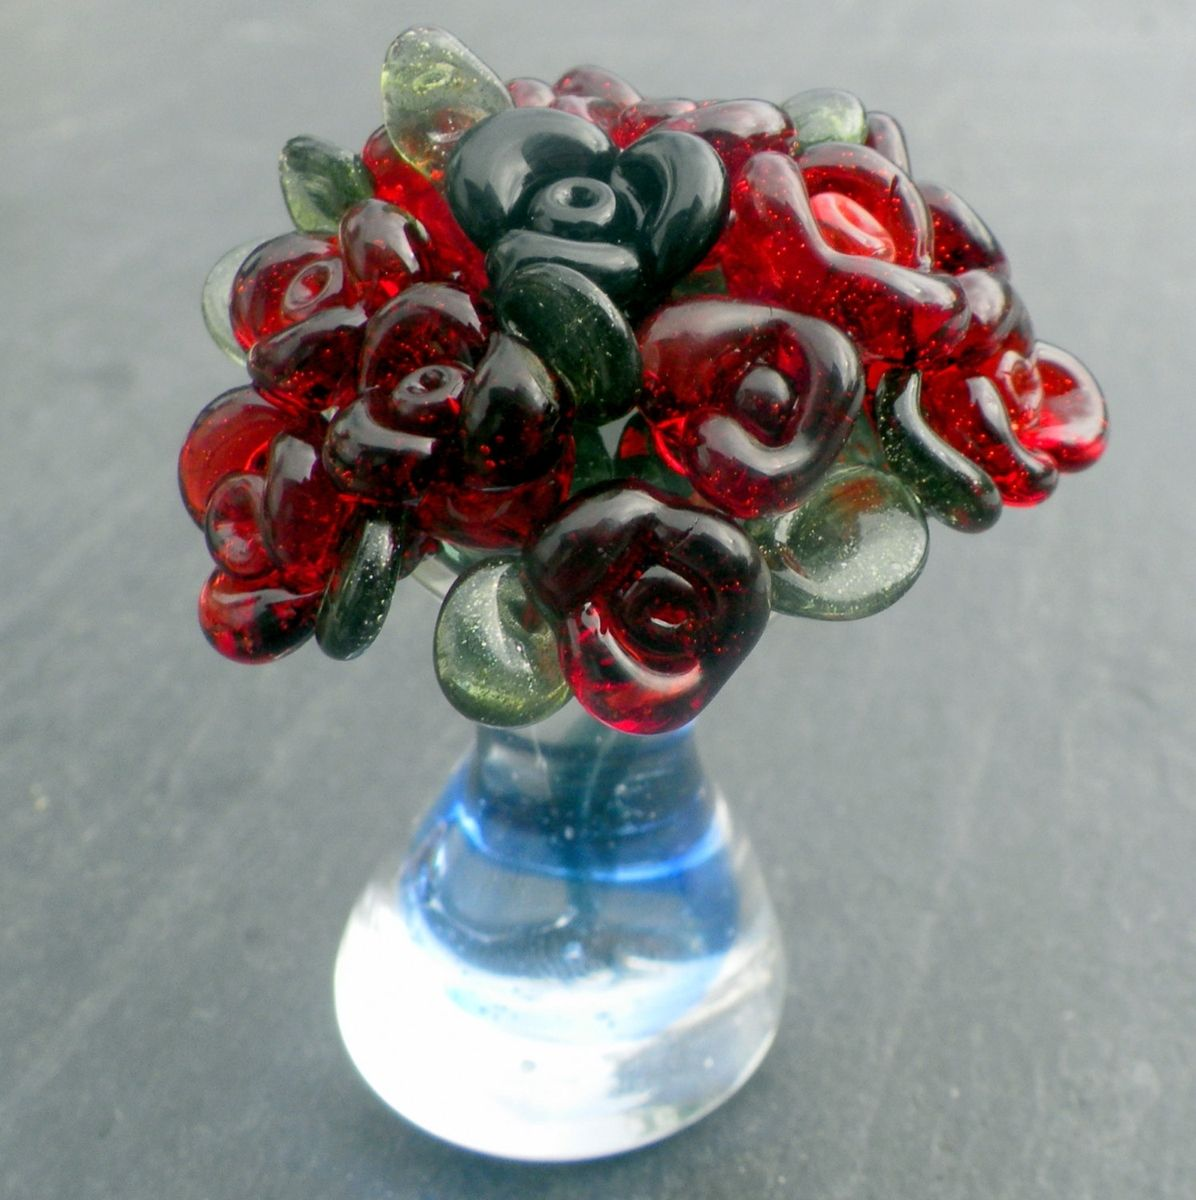 Custom made miniature glass bouquet of red roses in glass vase by custom made miniature glass bouquet of red roses in glass vase by untamed rose custommade reviewsmspy